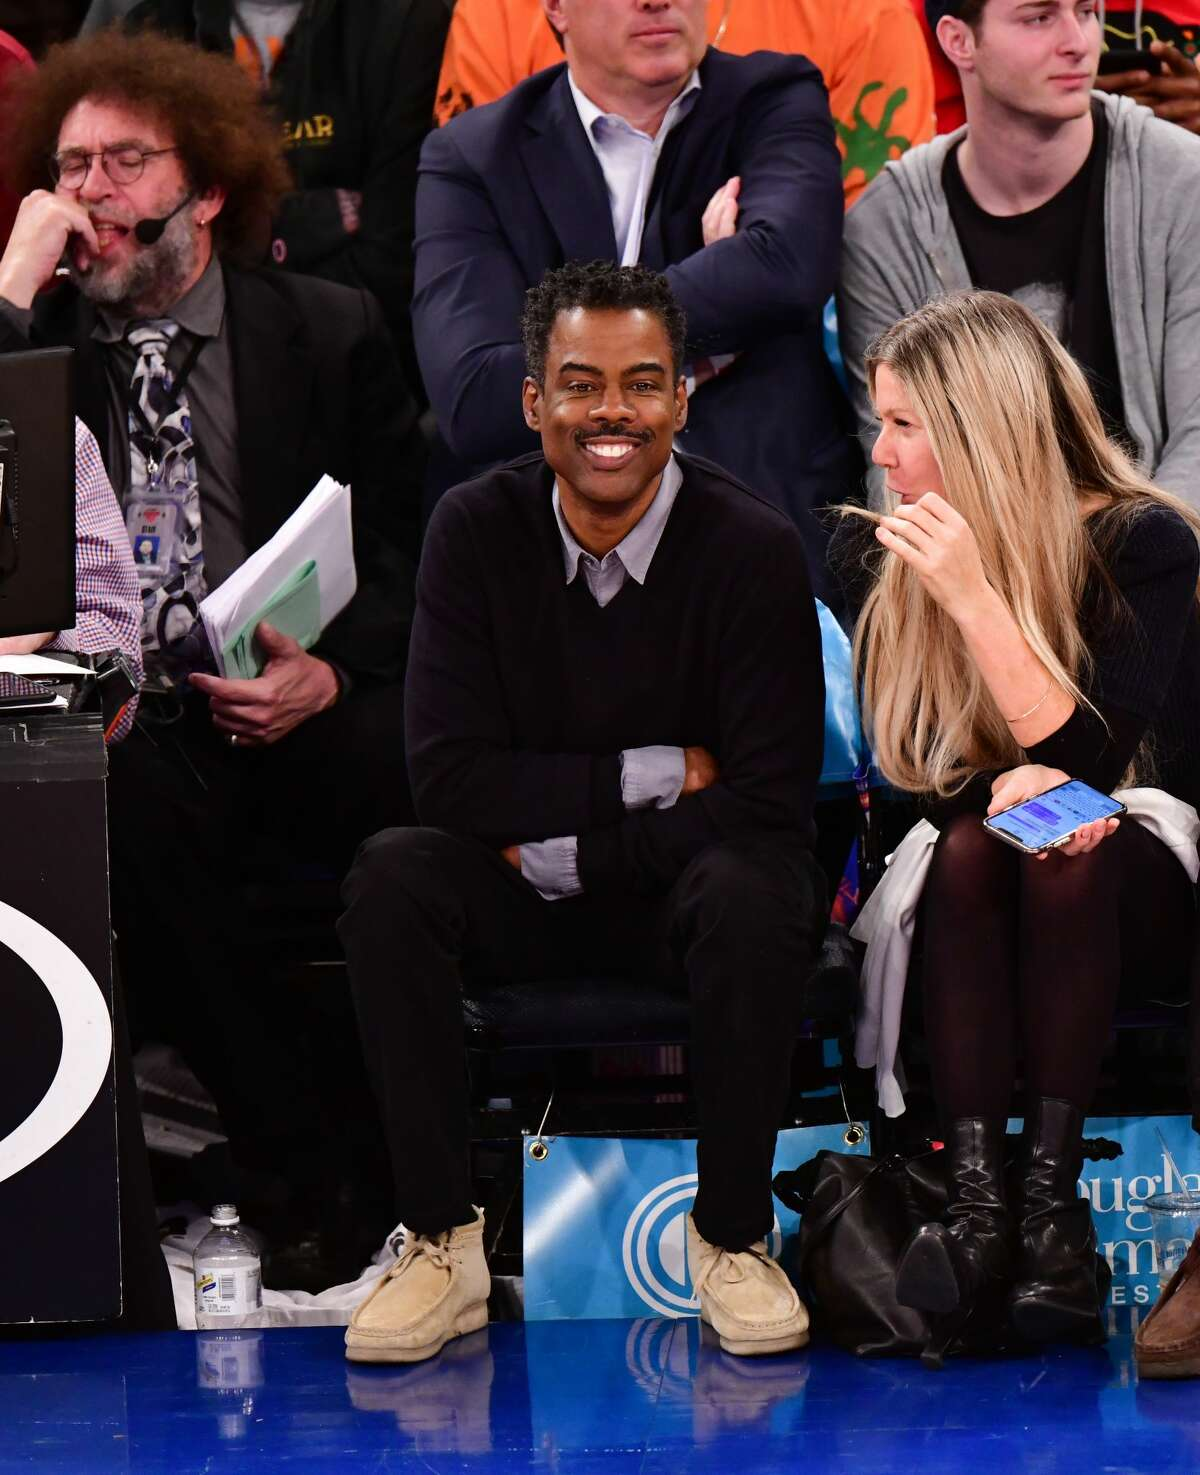 NEW YORK, NY - MARCH 02: Chris Rock attends Houston Rockets v New York Knicks game at Madison Square Garden on March 2, 2020 in New York City. (Photo by James Devaney/Getty Images)